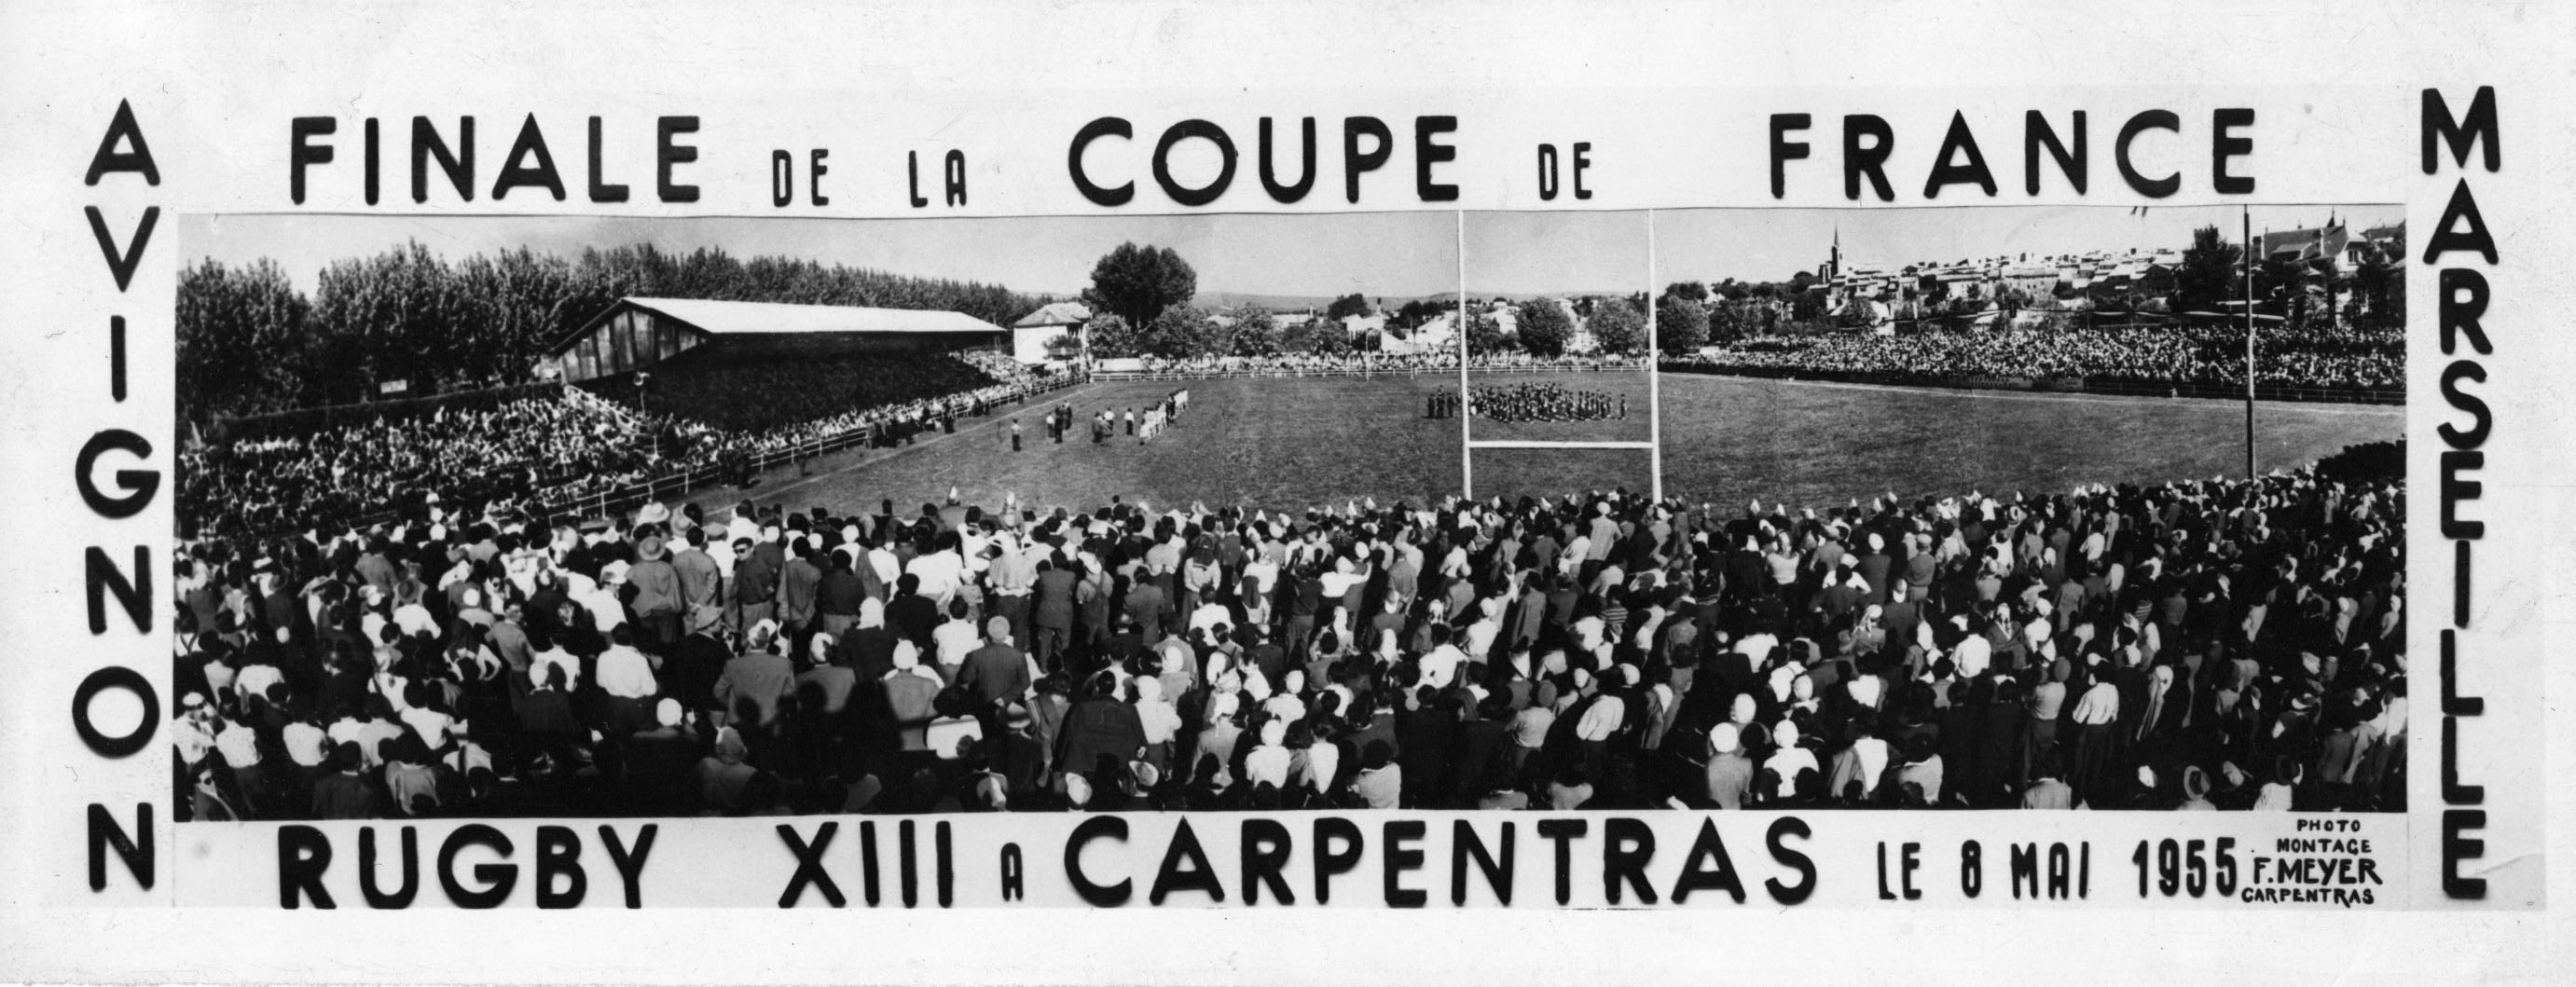 Coupe de France 1955. SOA 18 Marseille XIII 10.